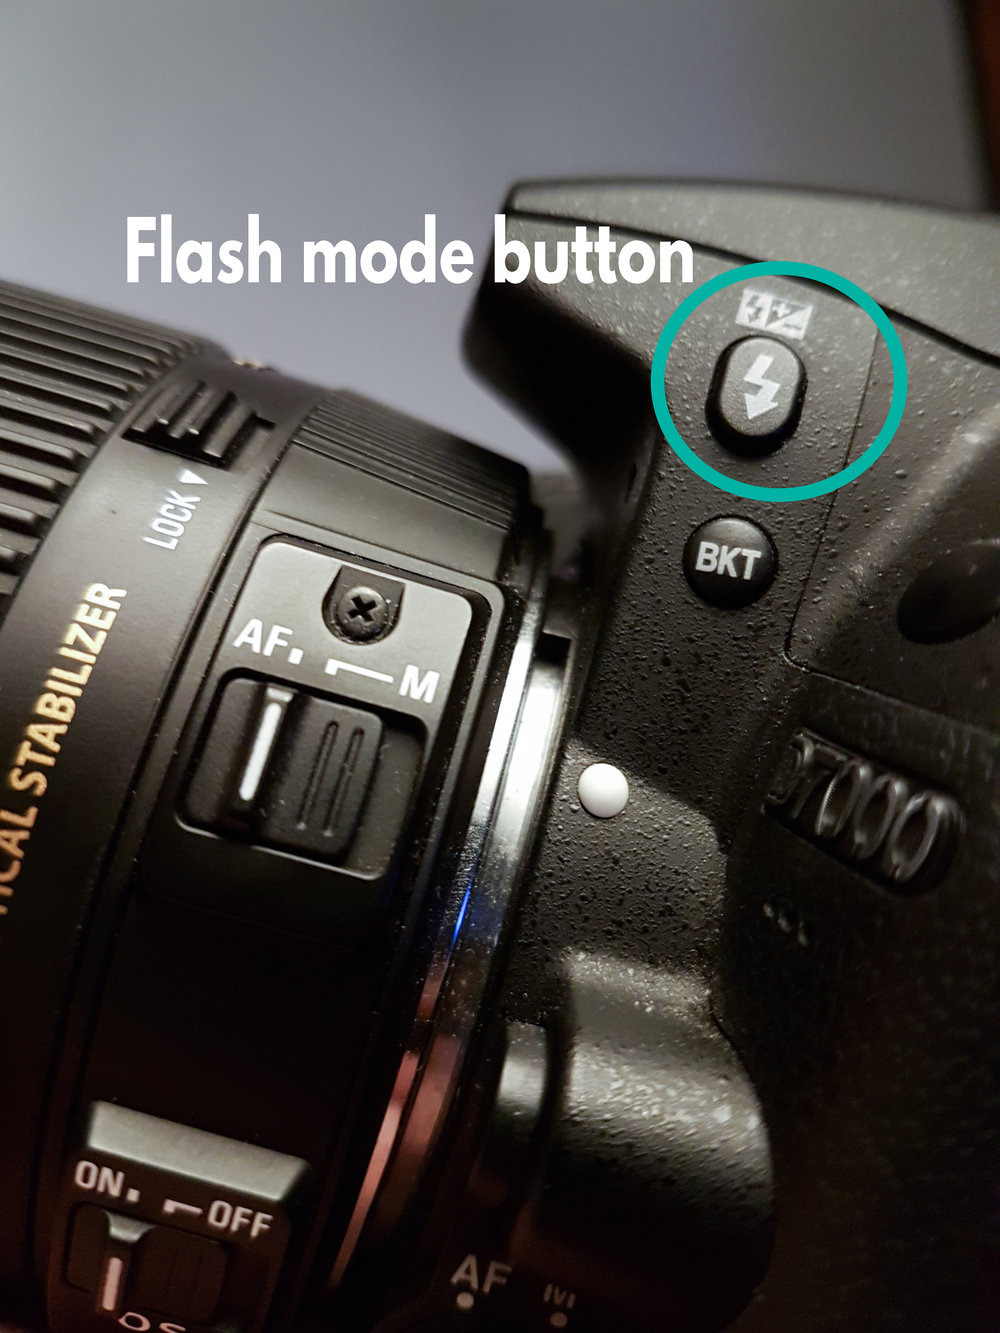 Flash mode button - Press this and use the rear command dial to change flash mode. Press this and use the front sub command dial to change flash compensation